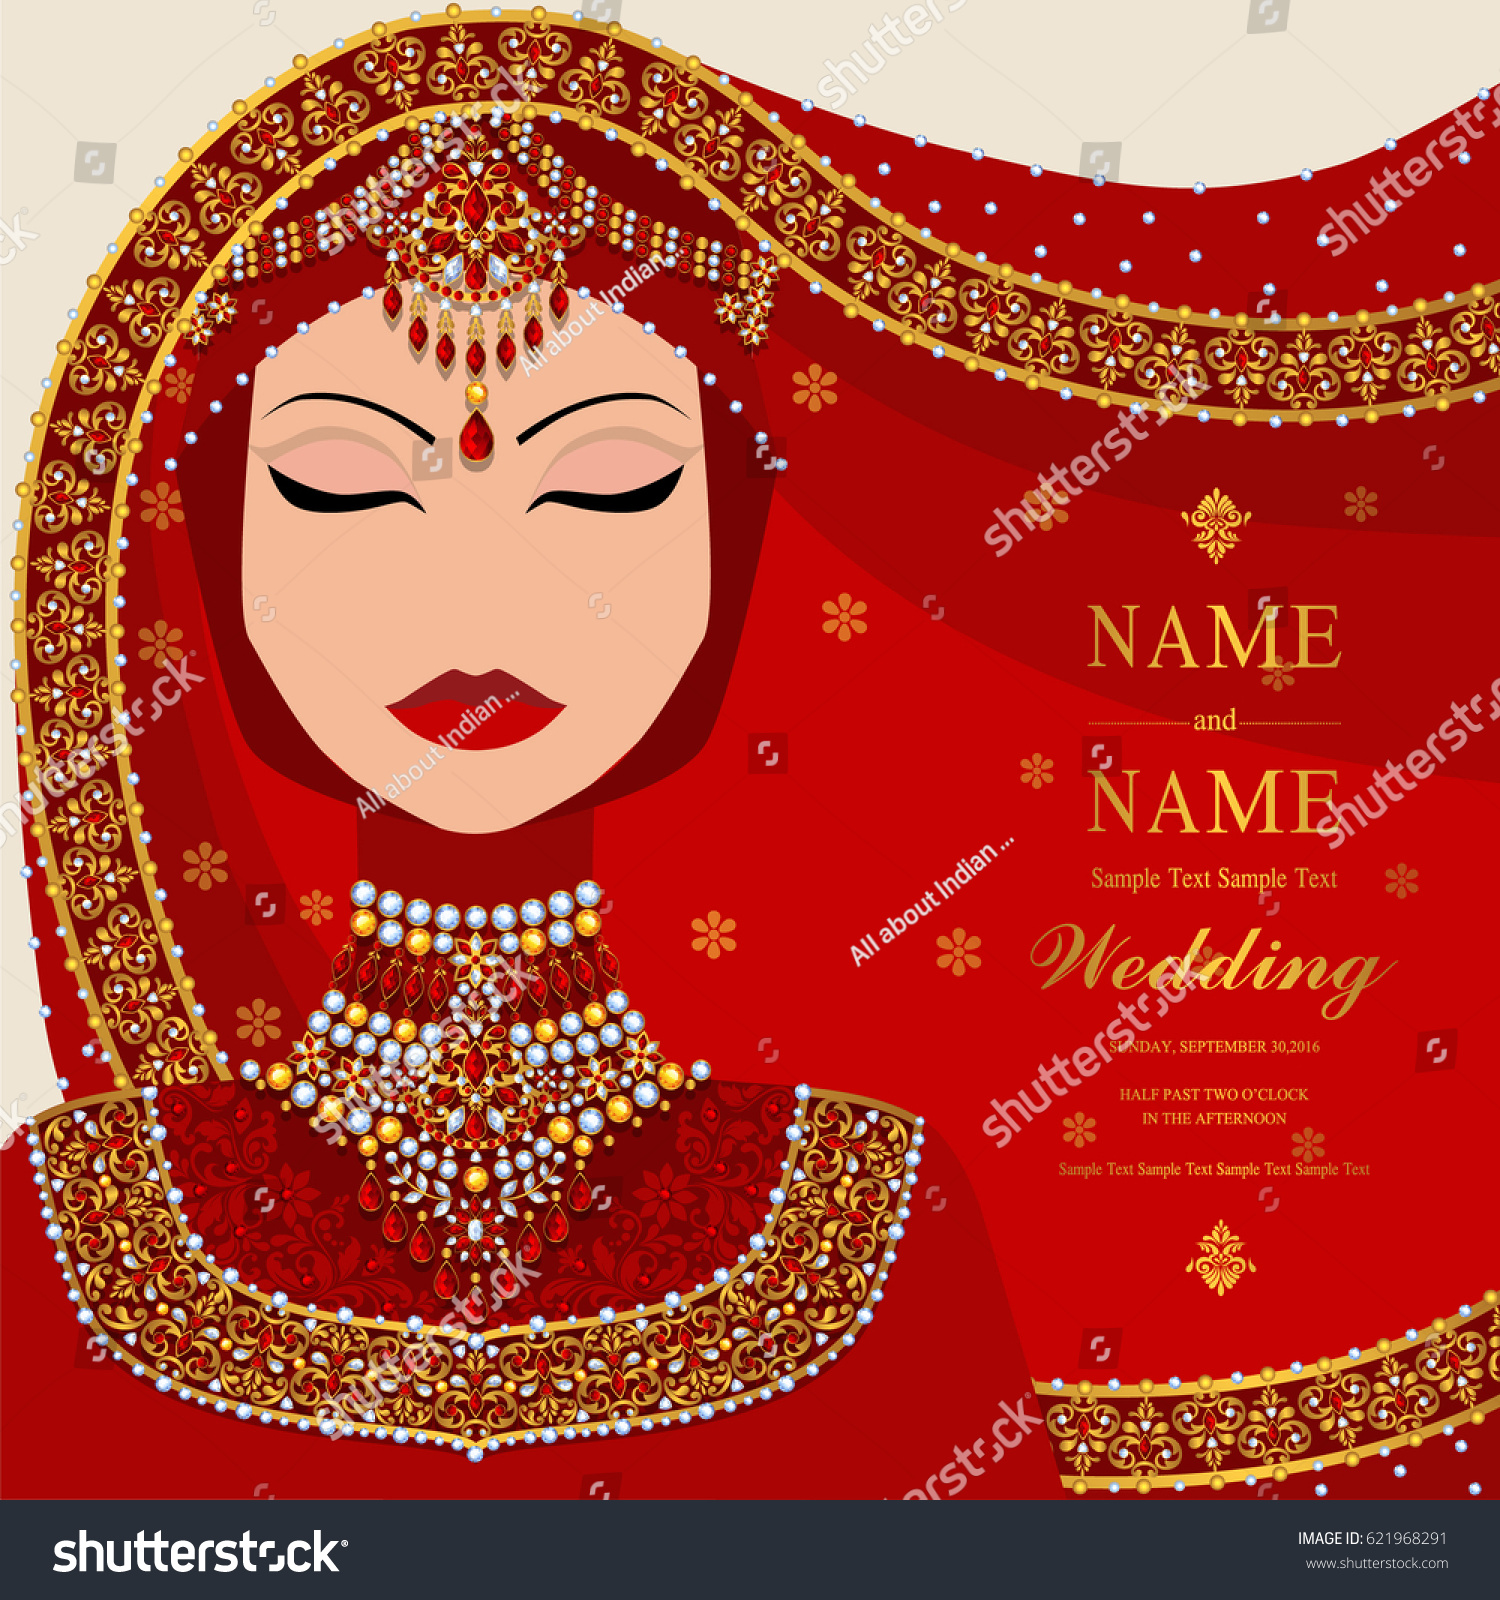 Wedding Invitation Card Templates Muslim Women Stock Vector (Royalty ...